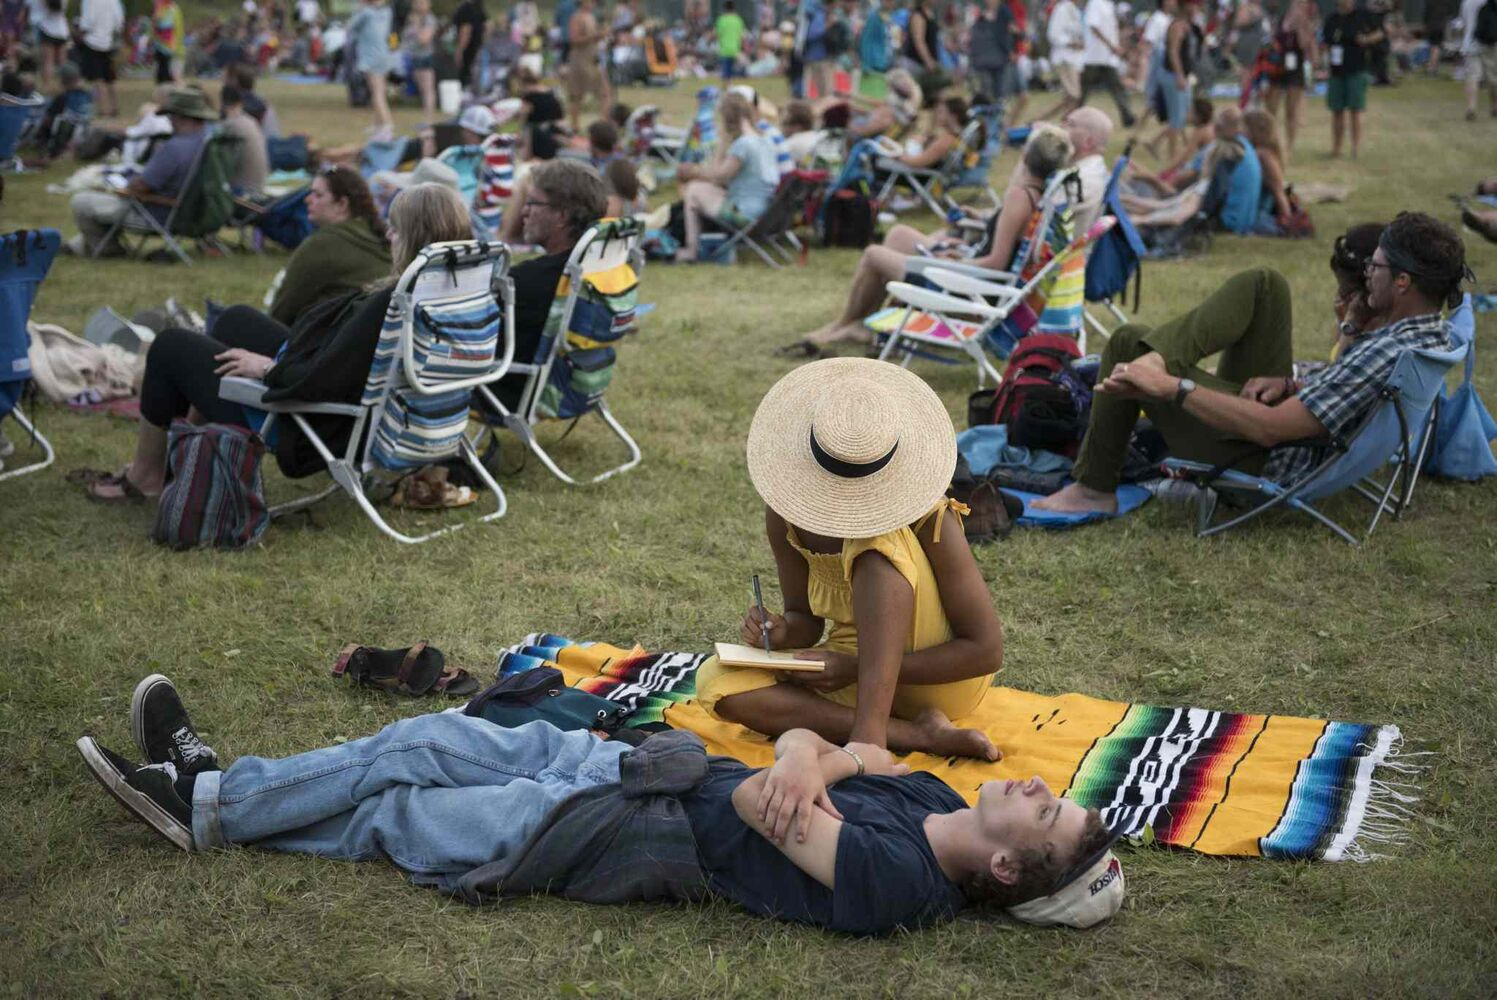 Audiences take in the final evening of Winnipeg Folk Festival 2016 at Birds Hill Park Sunday.  (DAVID LIPNOWSKI / WINNIPEG FREE PRESS)